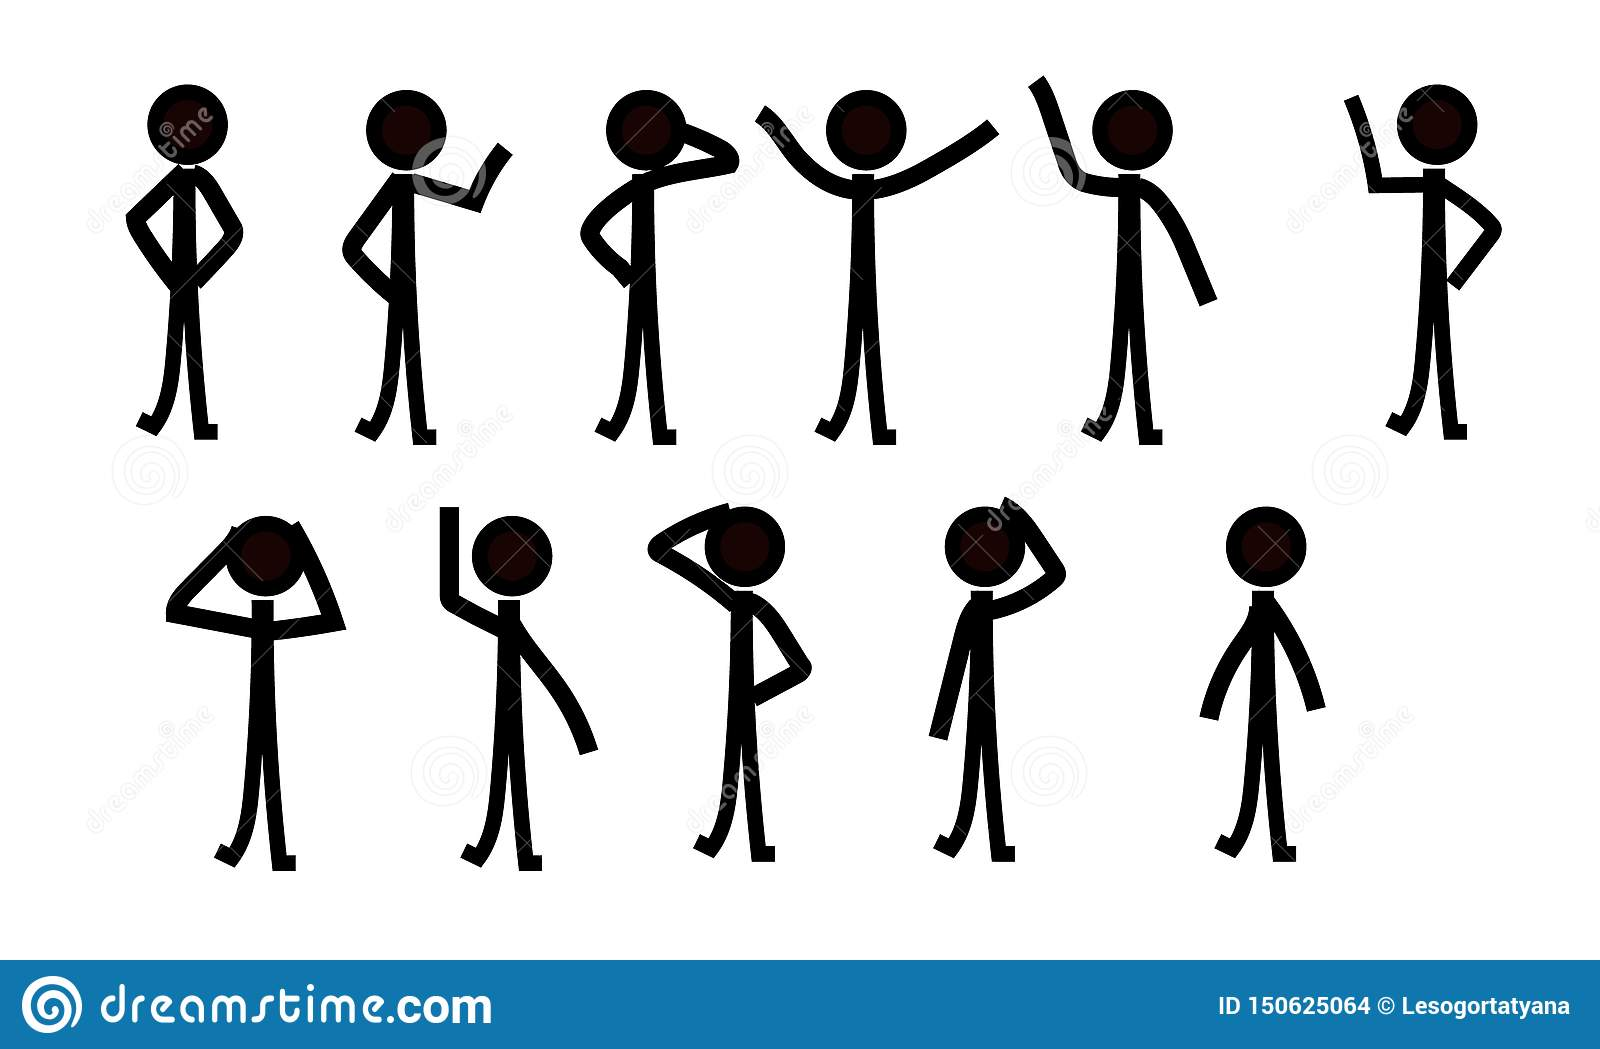 Sticks figure people pictograph, different poses